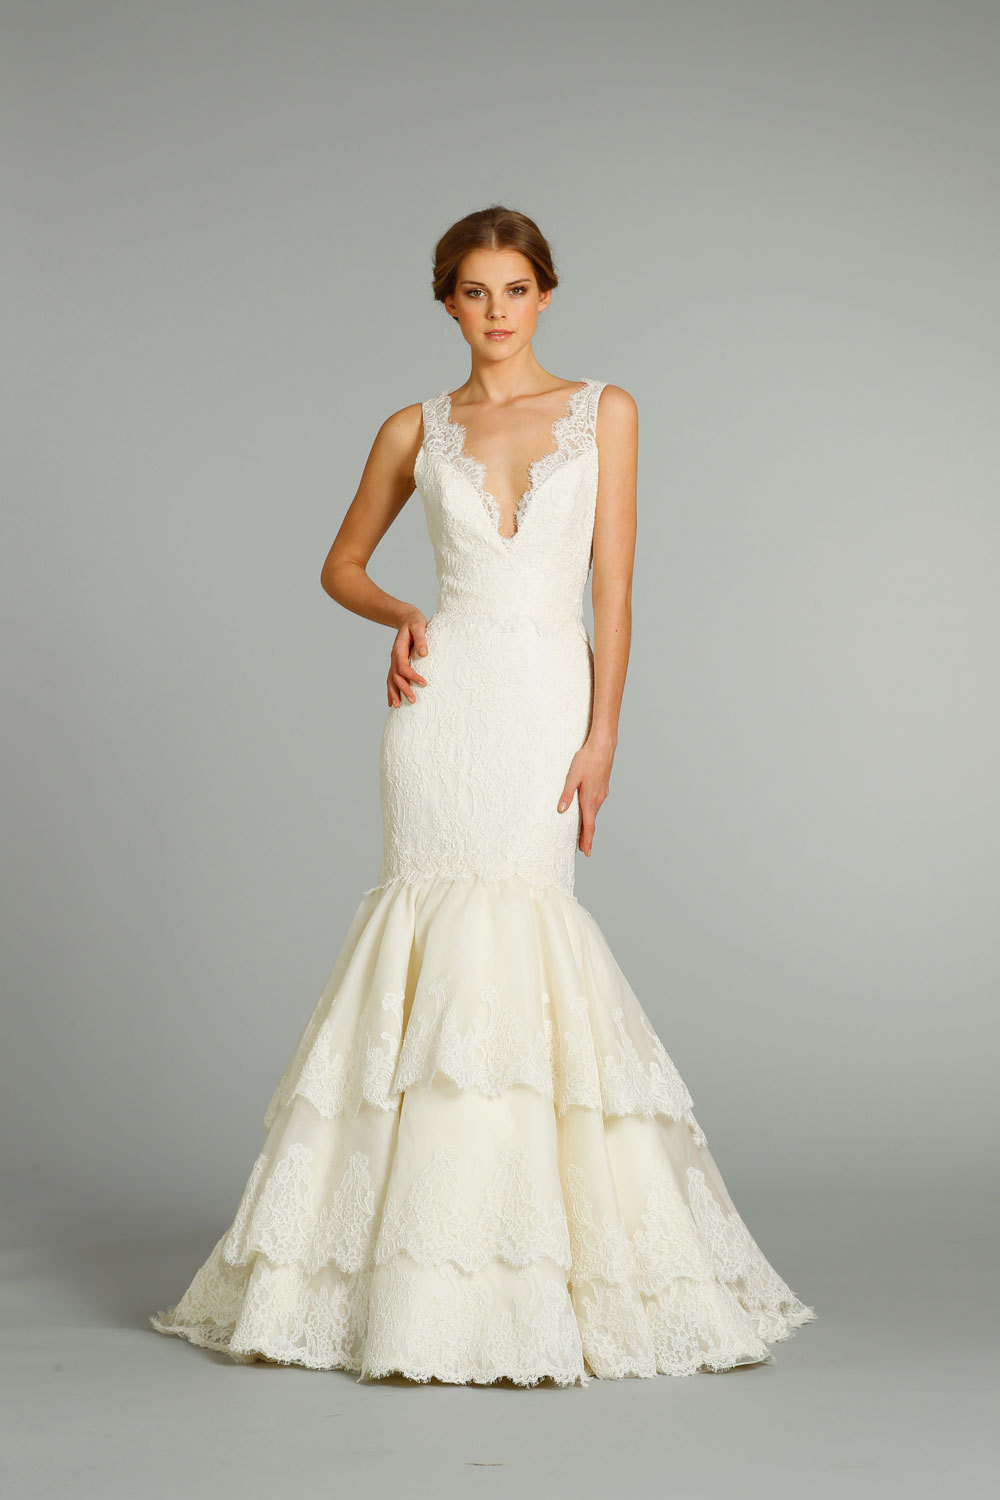 Fall 2012 wedding dress jim hjelm bridal gowns 8259 for Jim hjelm wedding dresses